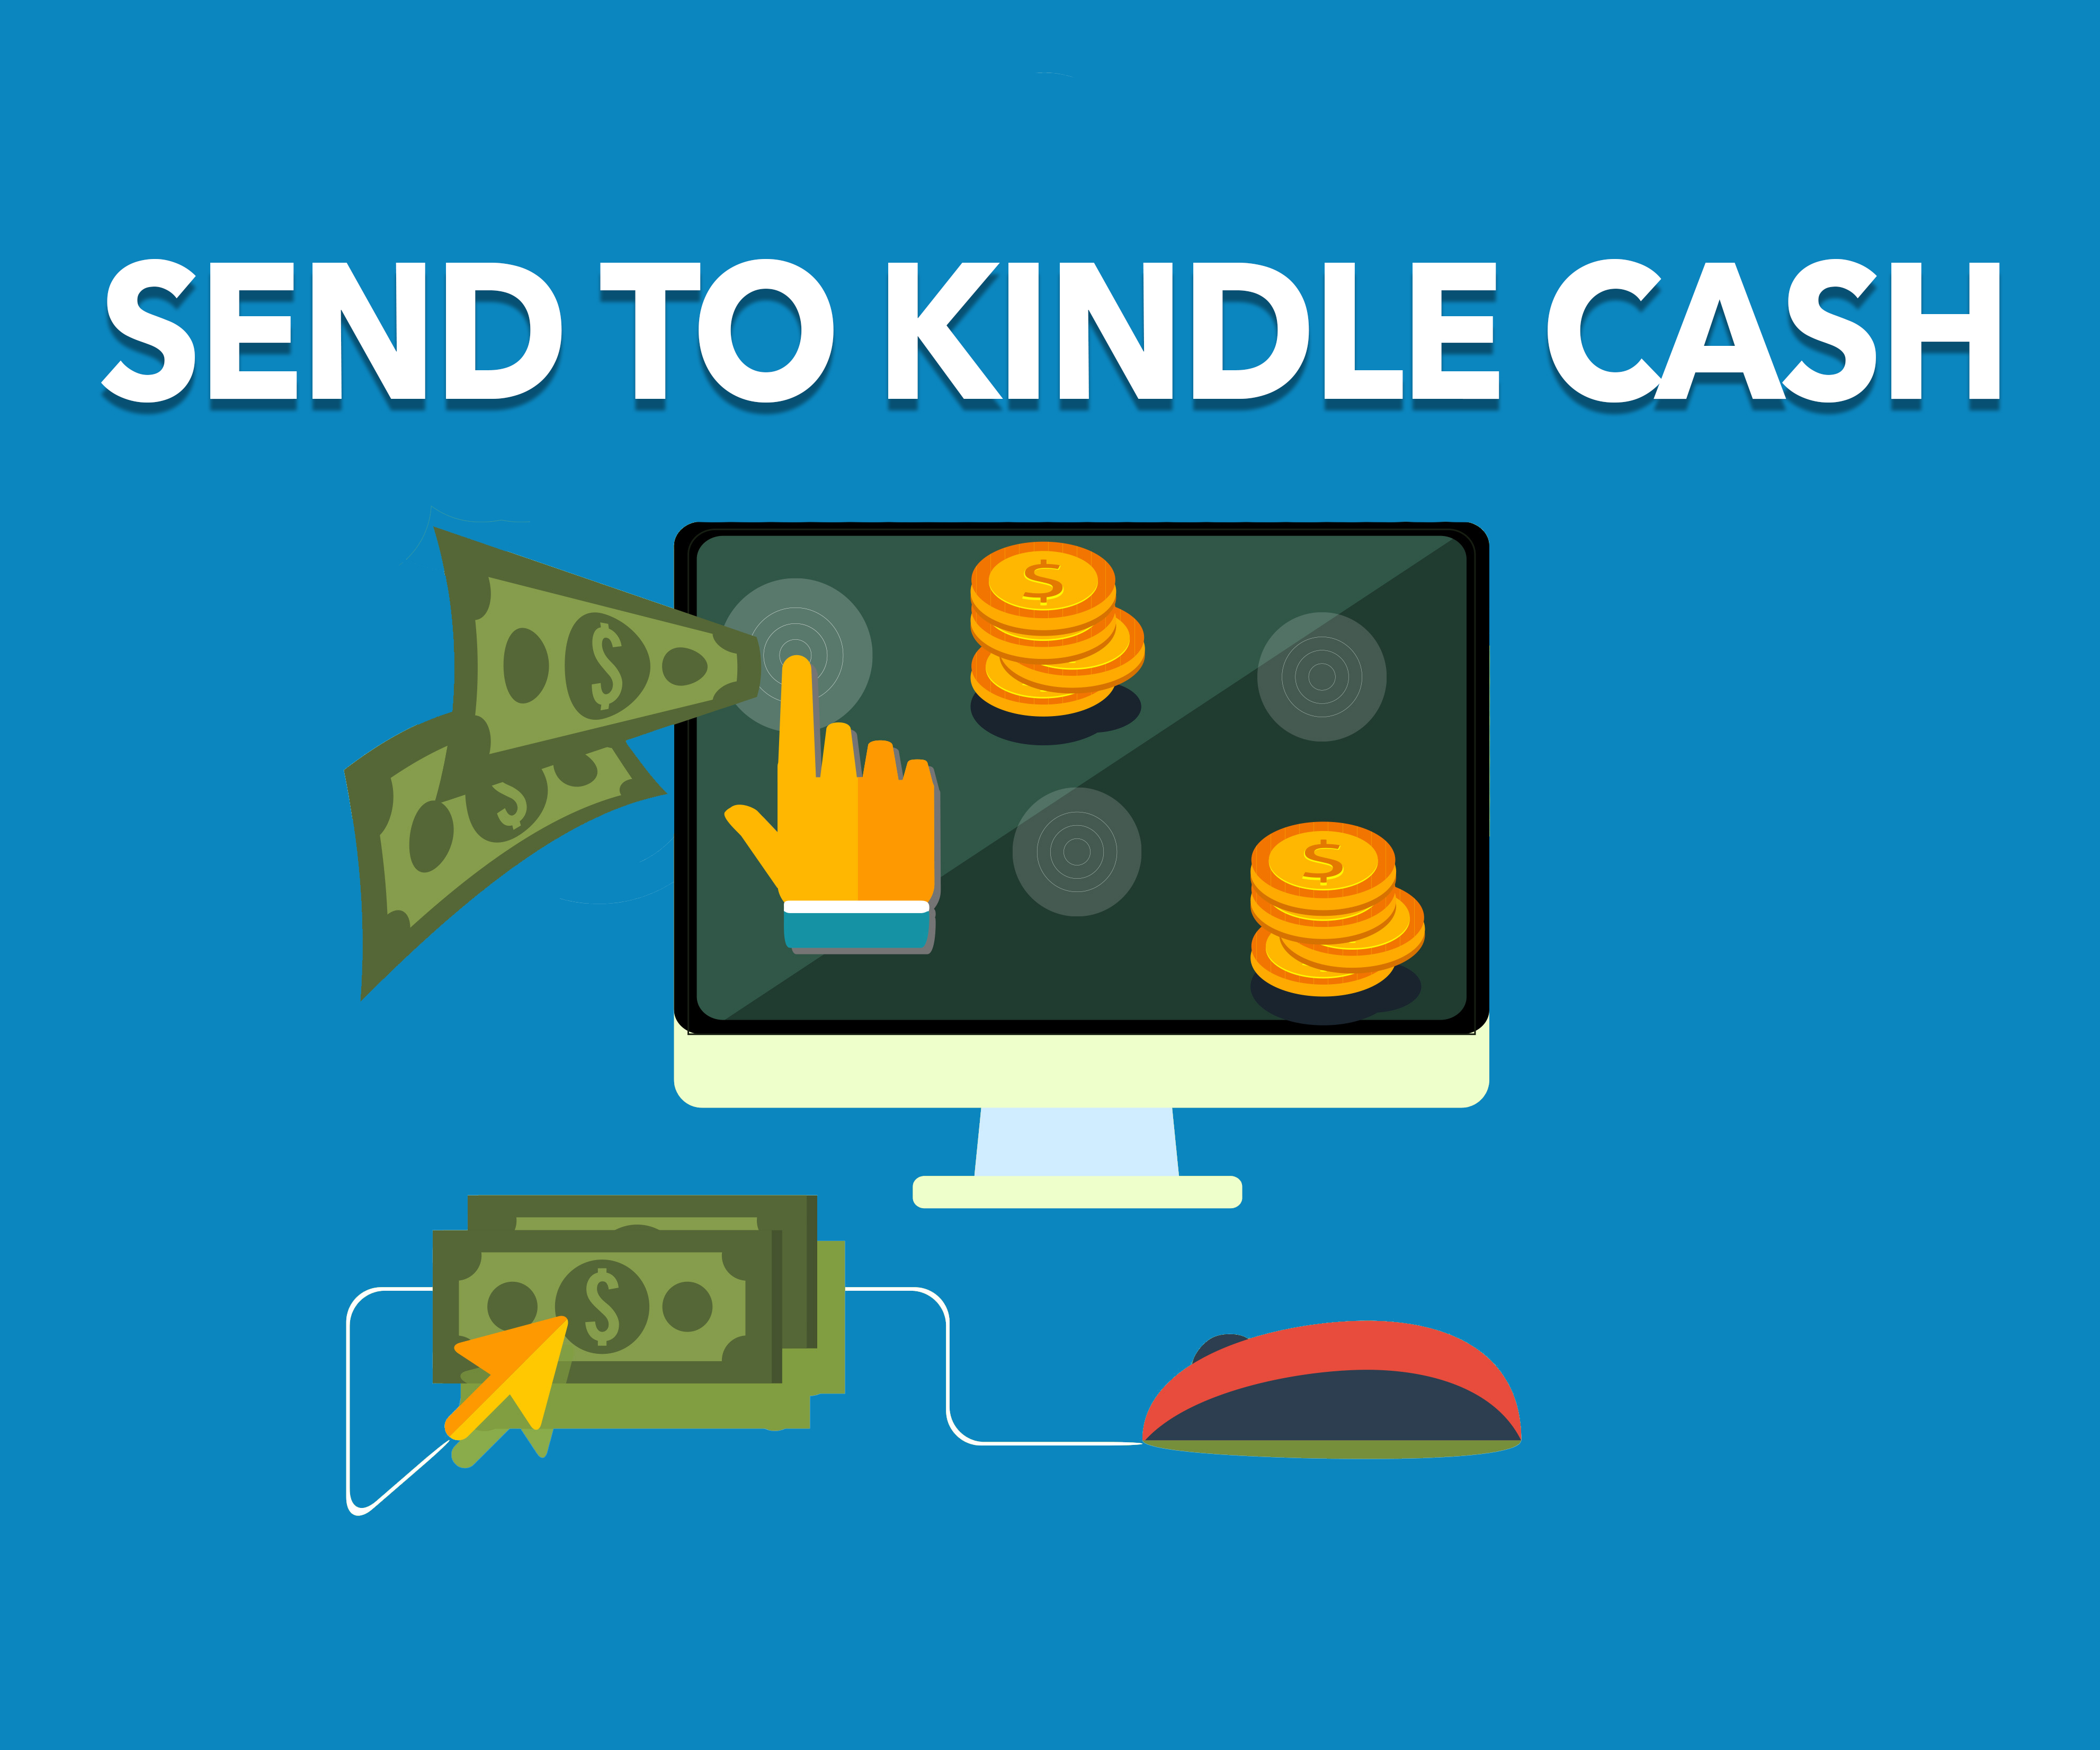 Send to Kindle Cash by Shawn Hansen